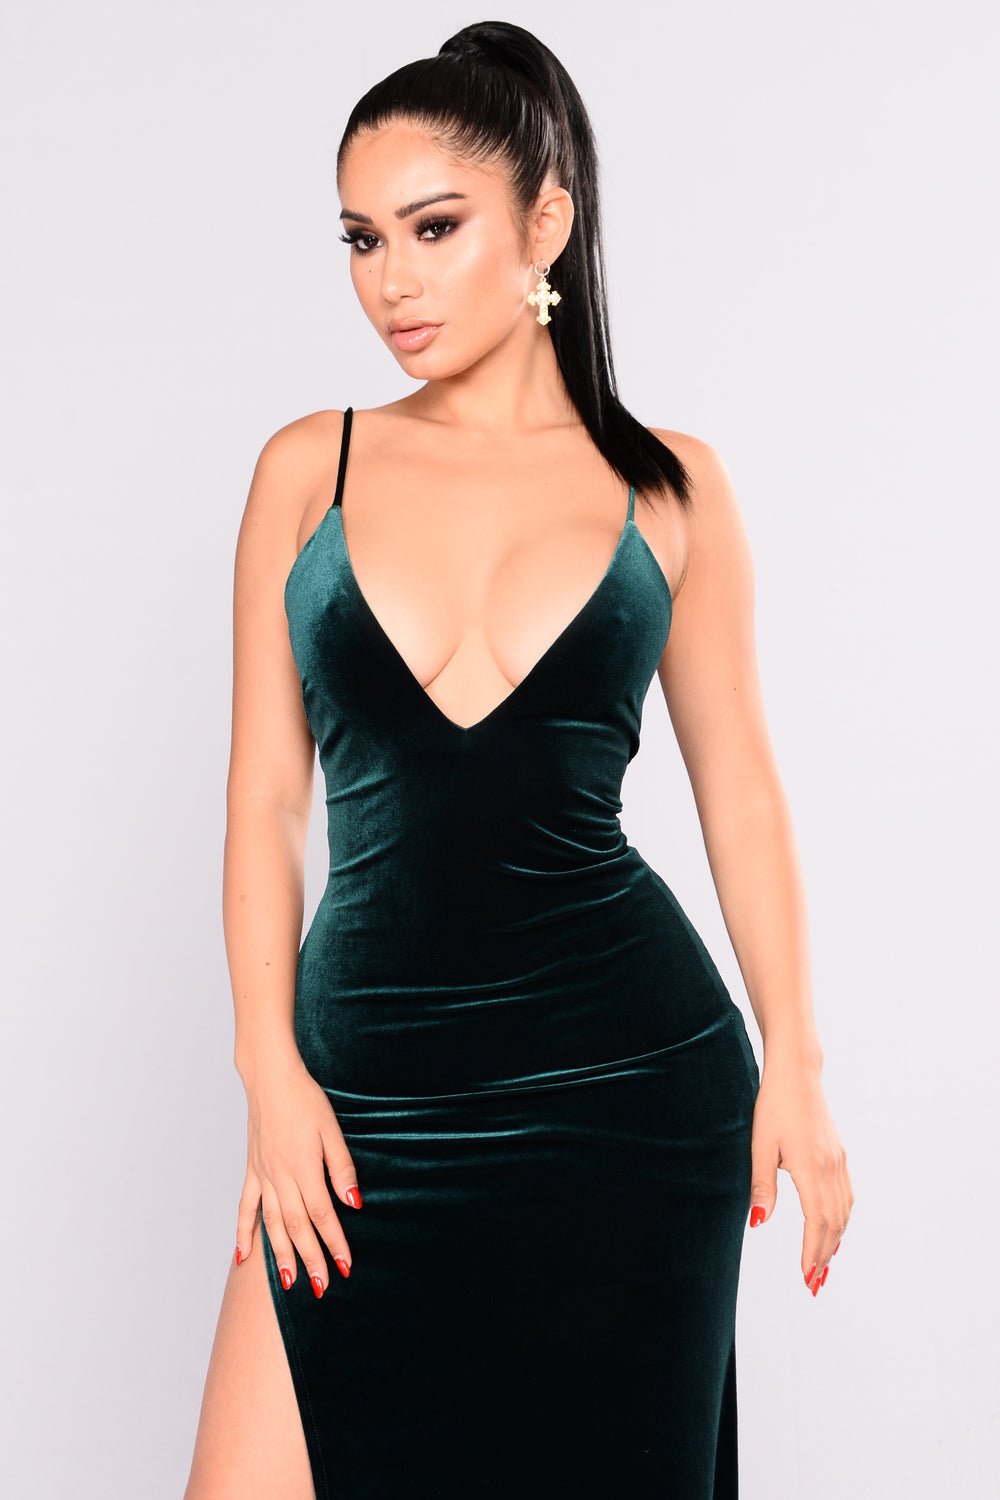 Galant Velvet Dress - Hunter Green